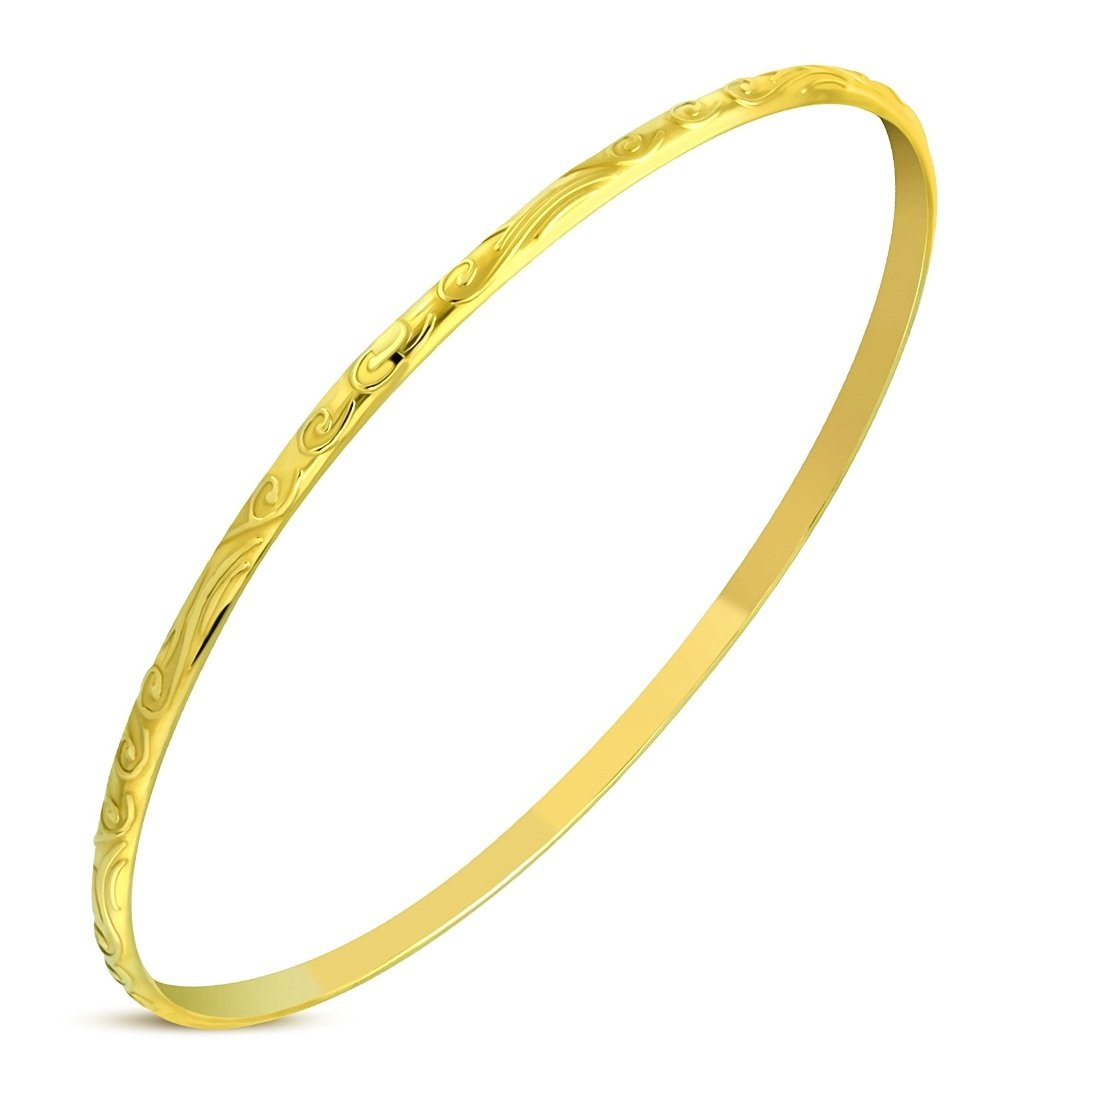 Stainless Steel Gold Color Plated Engraved Skinny Round Bangle Length 9.2